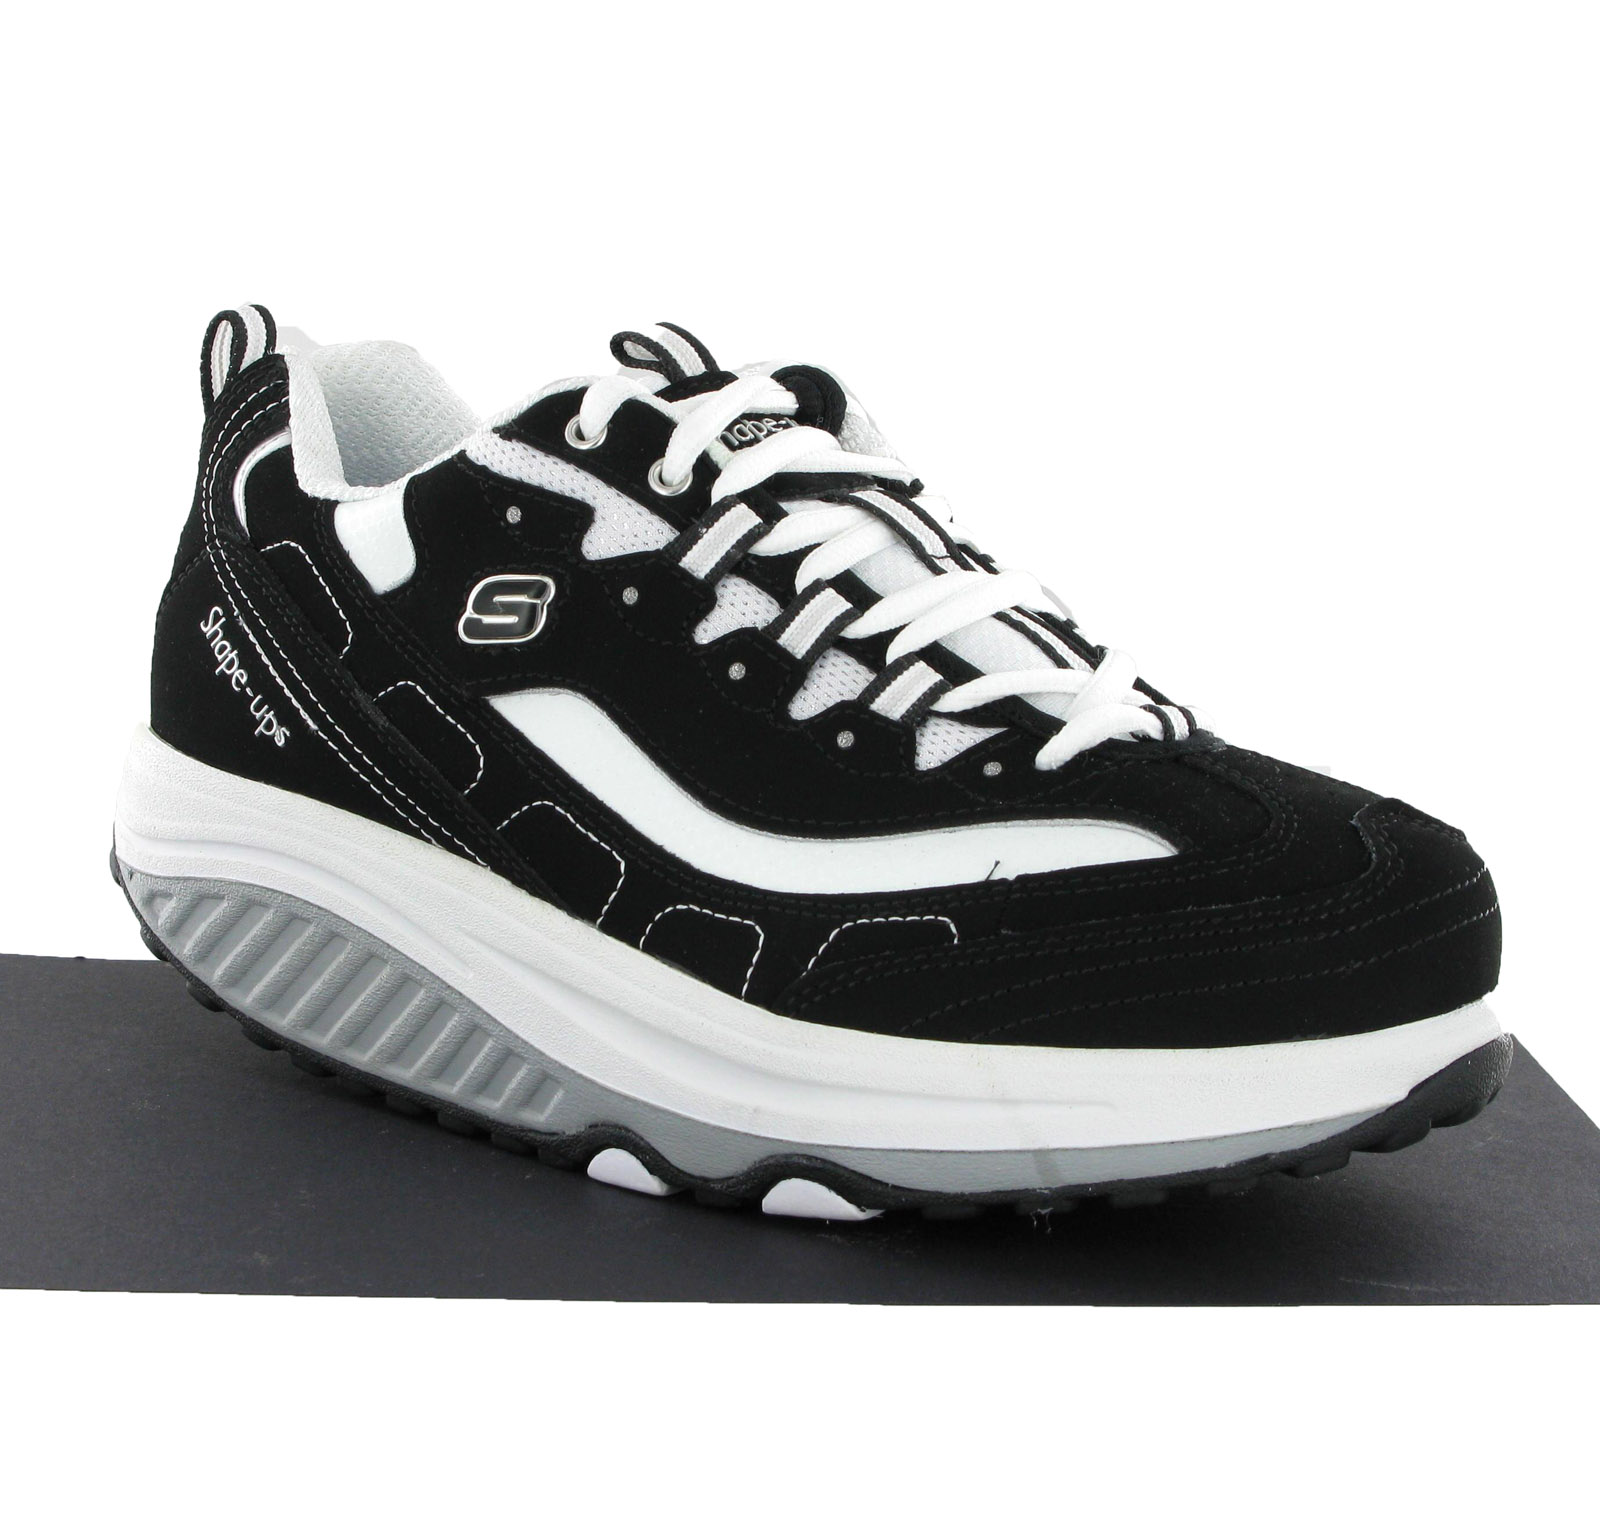 New Womens Skechers Fitness Toning Shape Up Sports Trainers Shoes